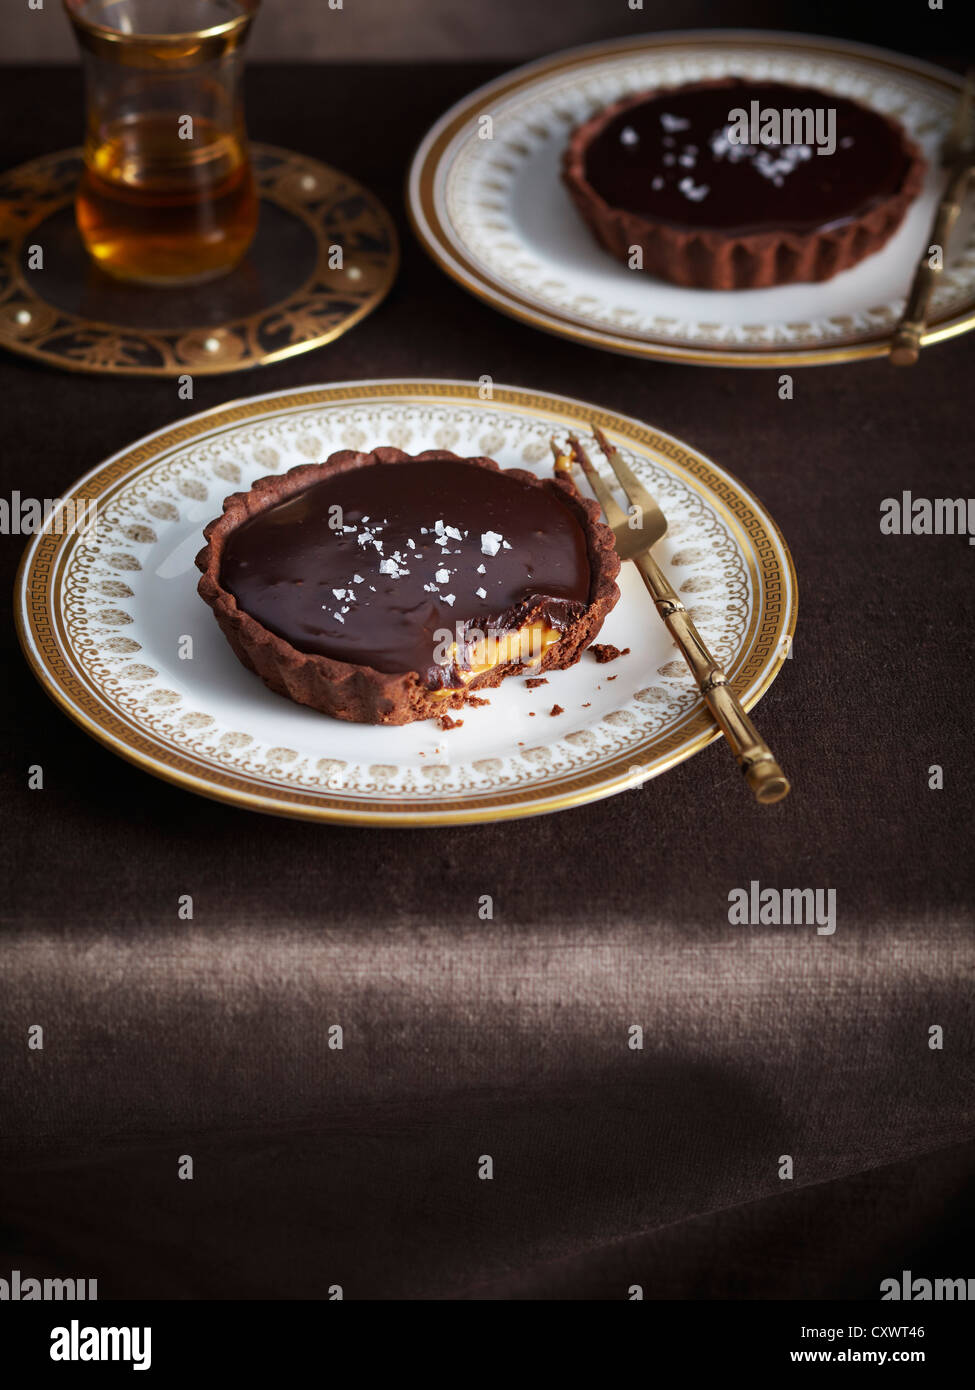 Plate of salted chocolate caramel tart - Stock Image